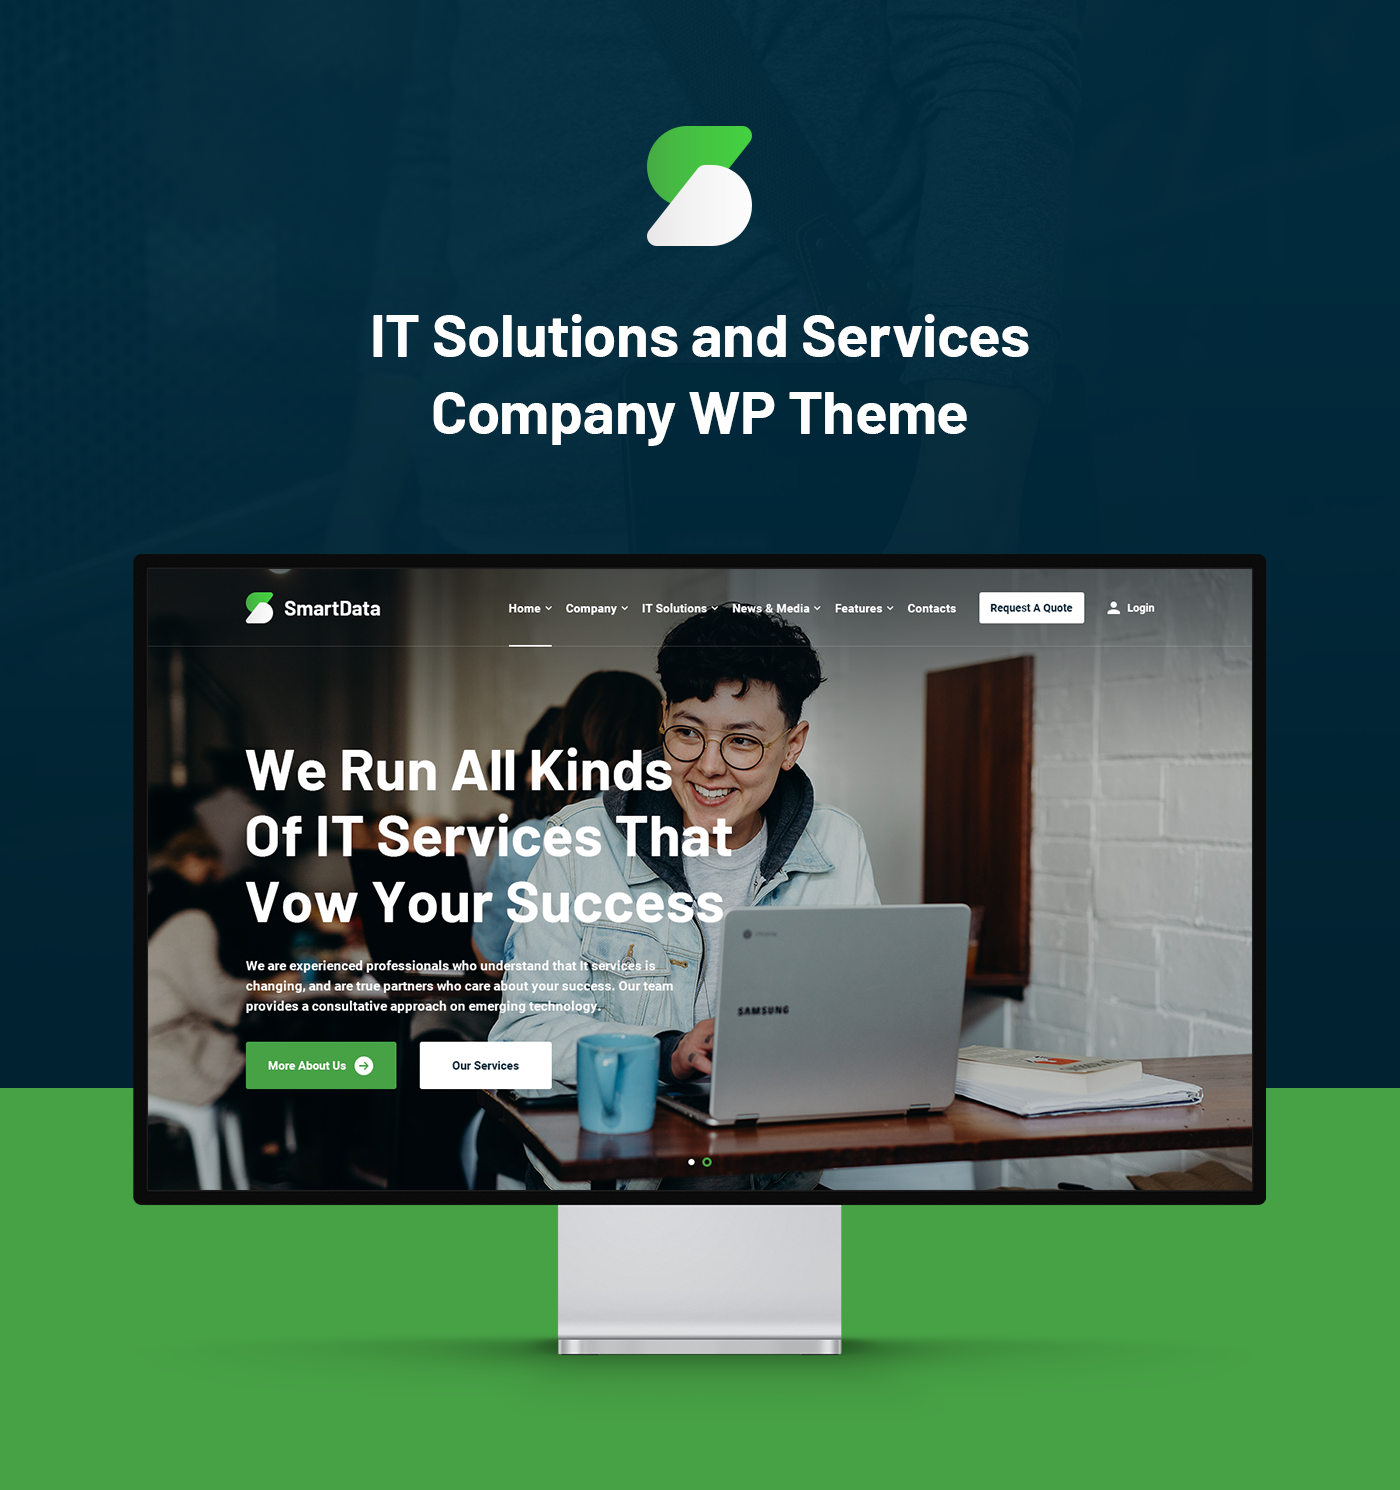 Smartdata - IT Solutions & Services WordPress Theme - 4